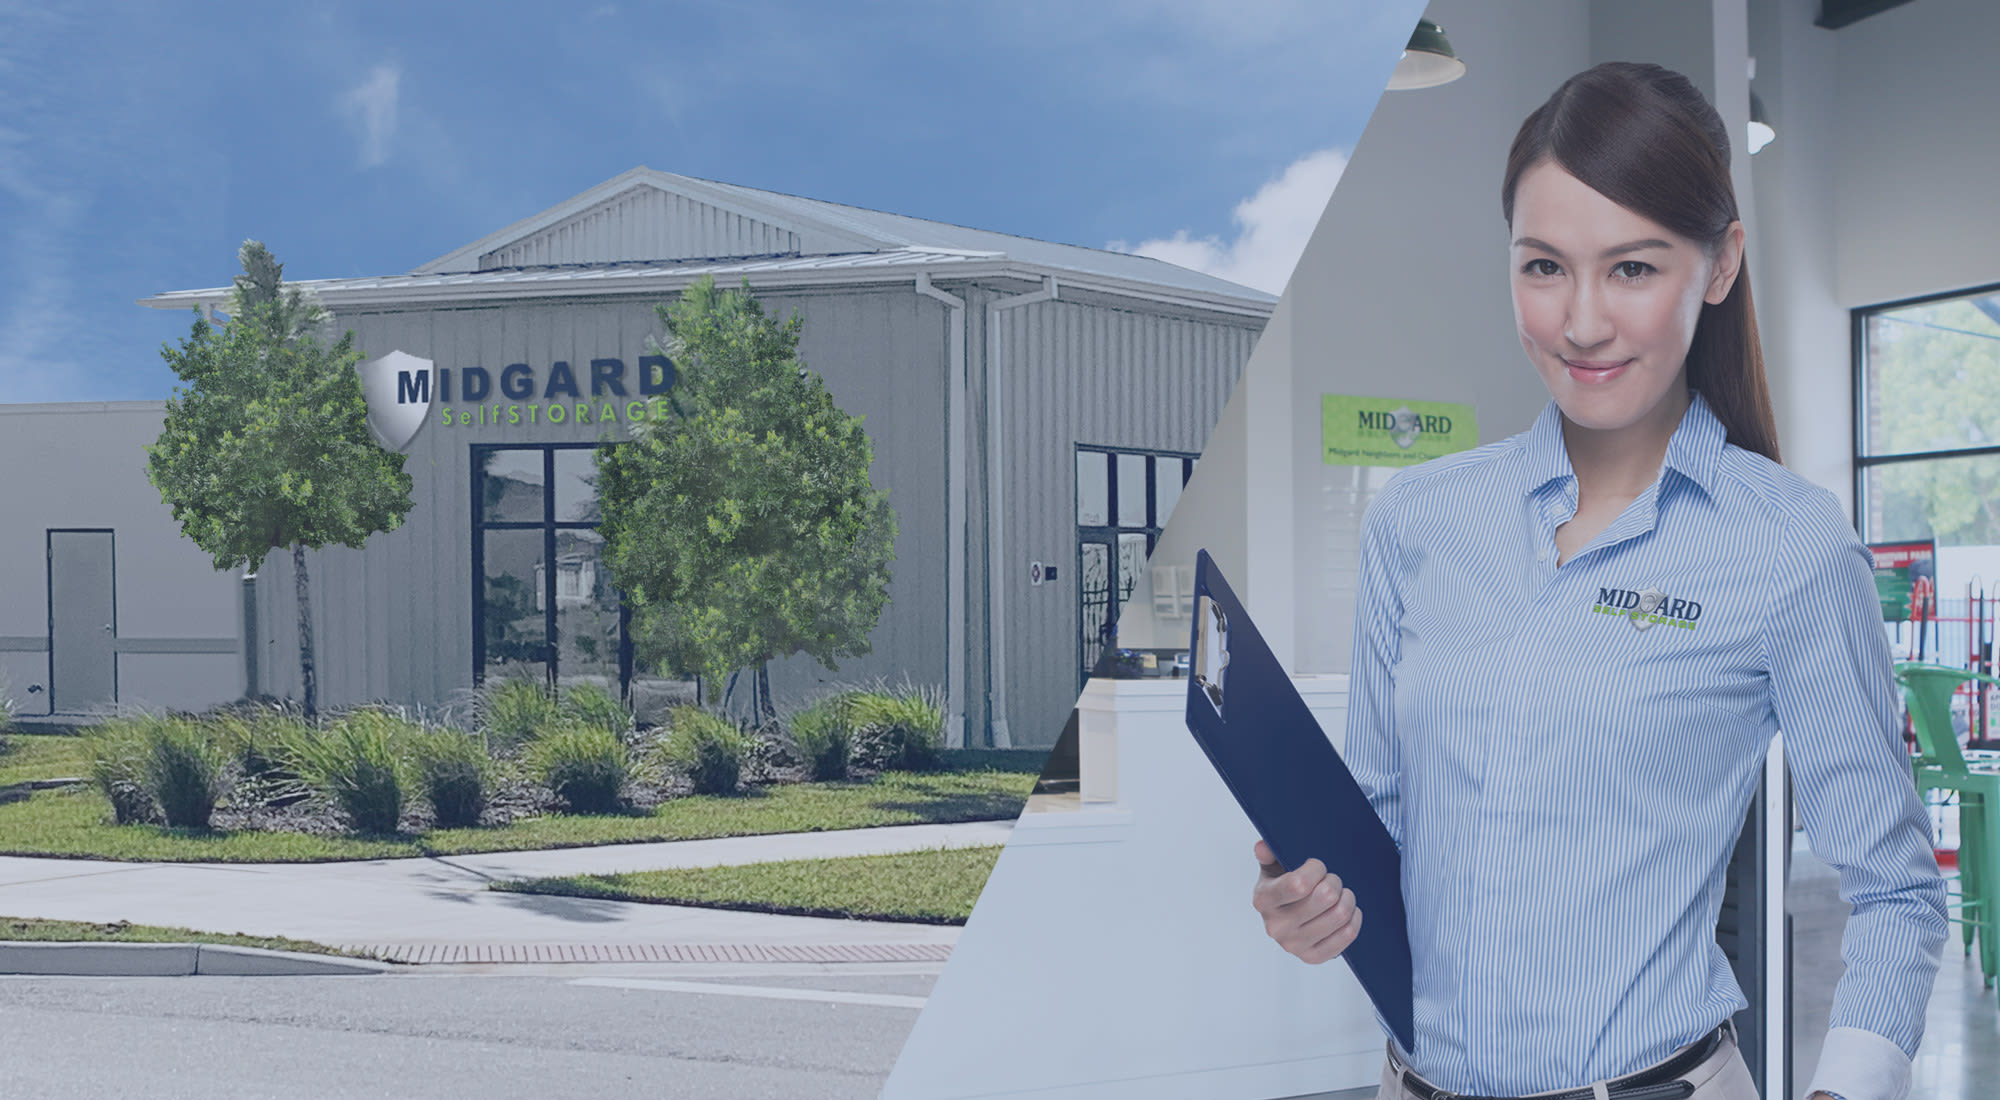 Midgard Self Storage in Melbourne, Florida